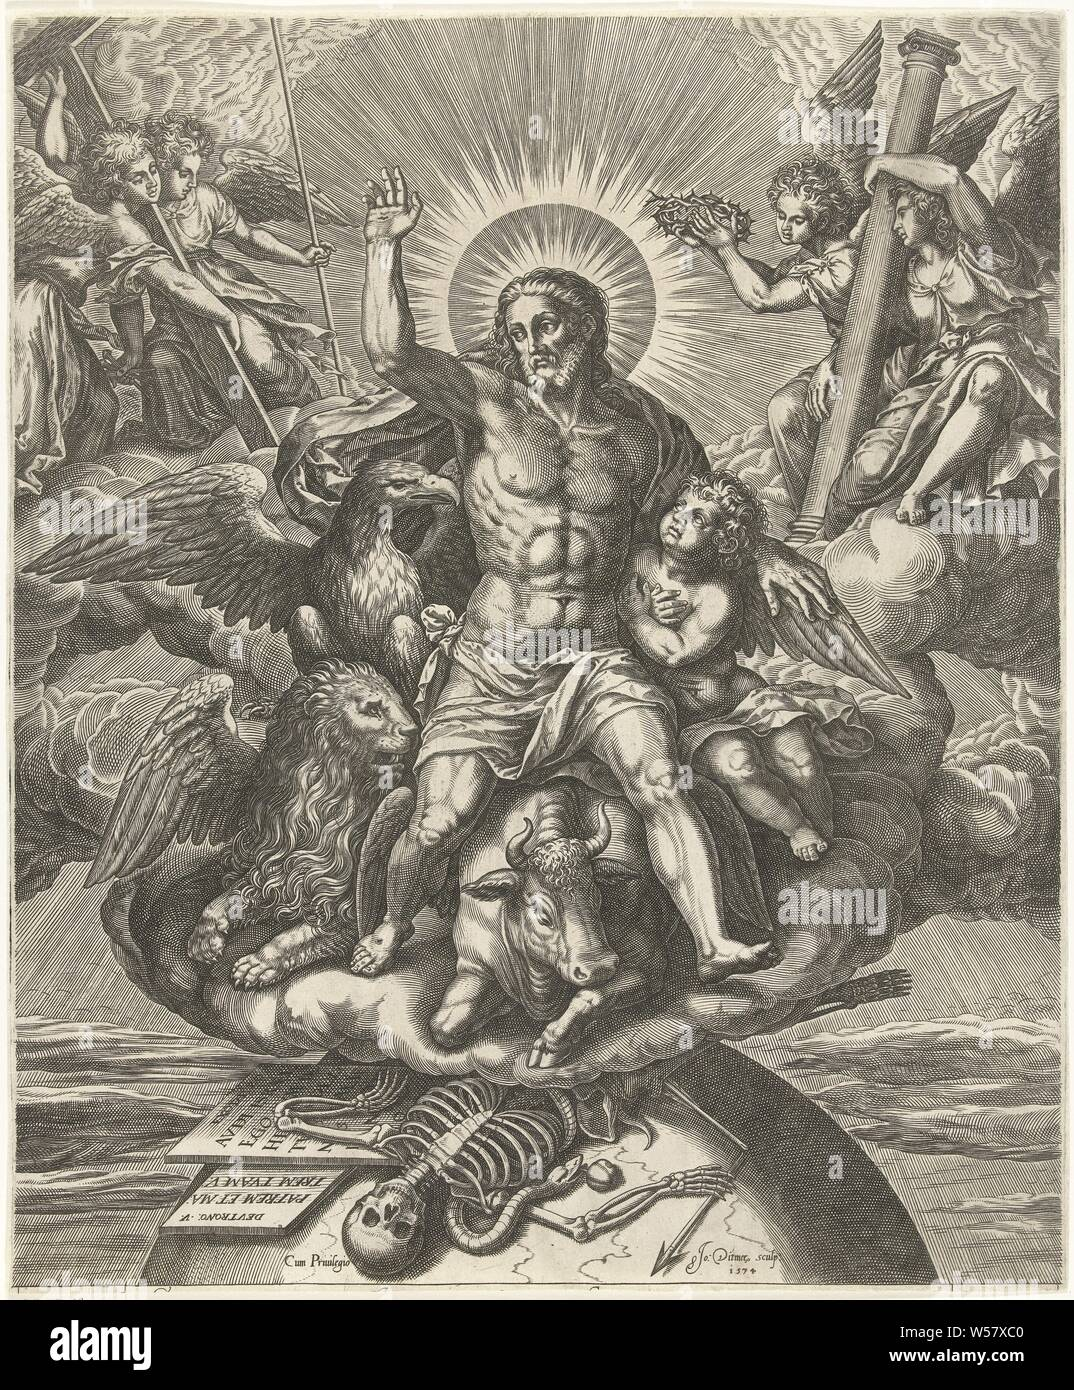 Christ in the clouds with symbols of evangelists, Christ in the clouds with symbols of evangelists and agony tools. Death is on the globe beneath the clouds, the four symbols of the evangelists, the apocalyptic beasts, 'Arma Christi ' Christ, Jan Ditmaer (mentioned on object), 1574, paper, engraving, h 414 mm × w 344 mm Stock Photo